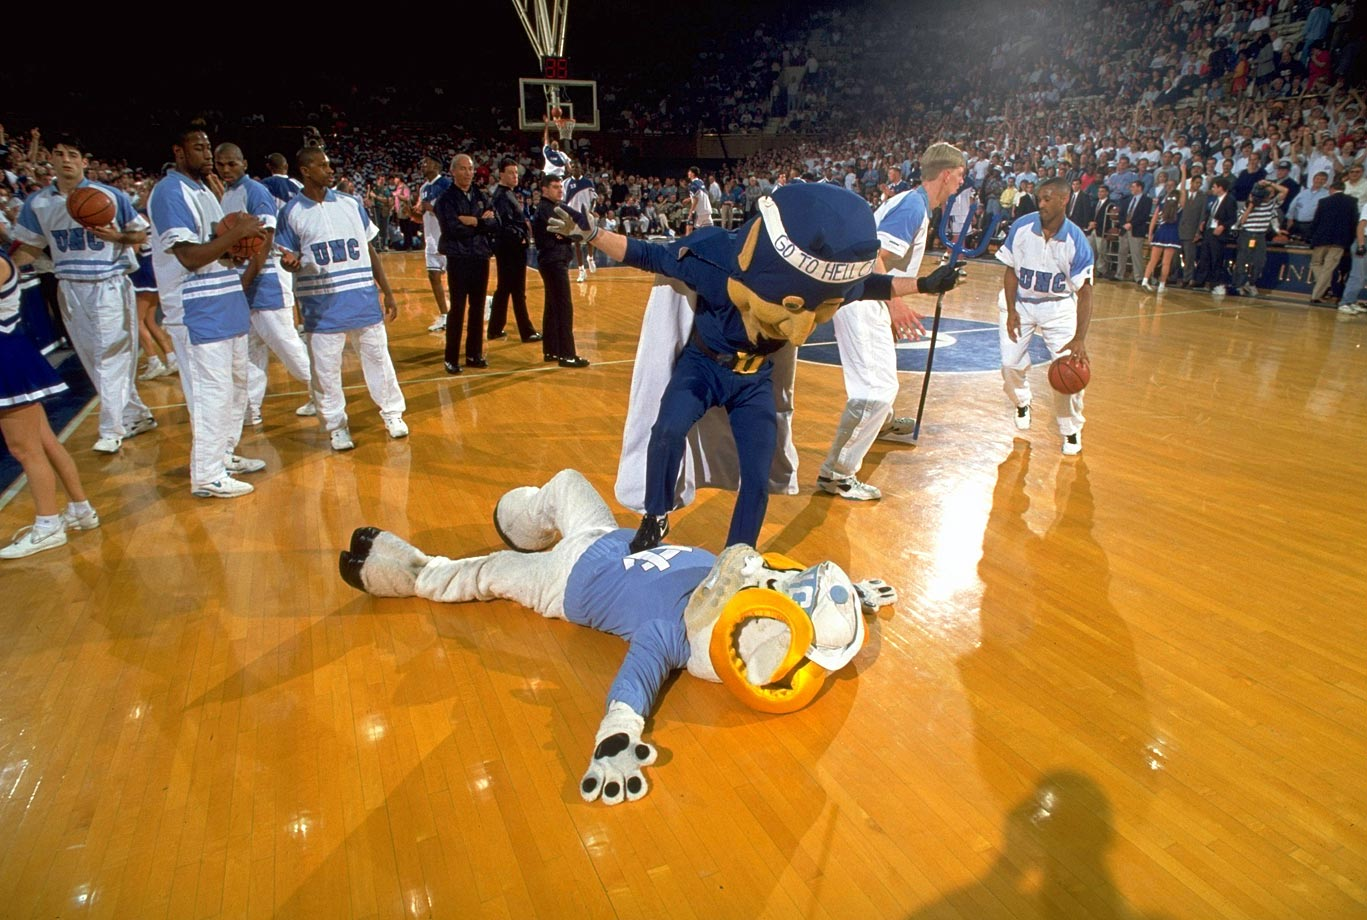 The Blue Devil and Ramses